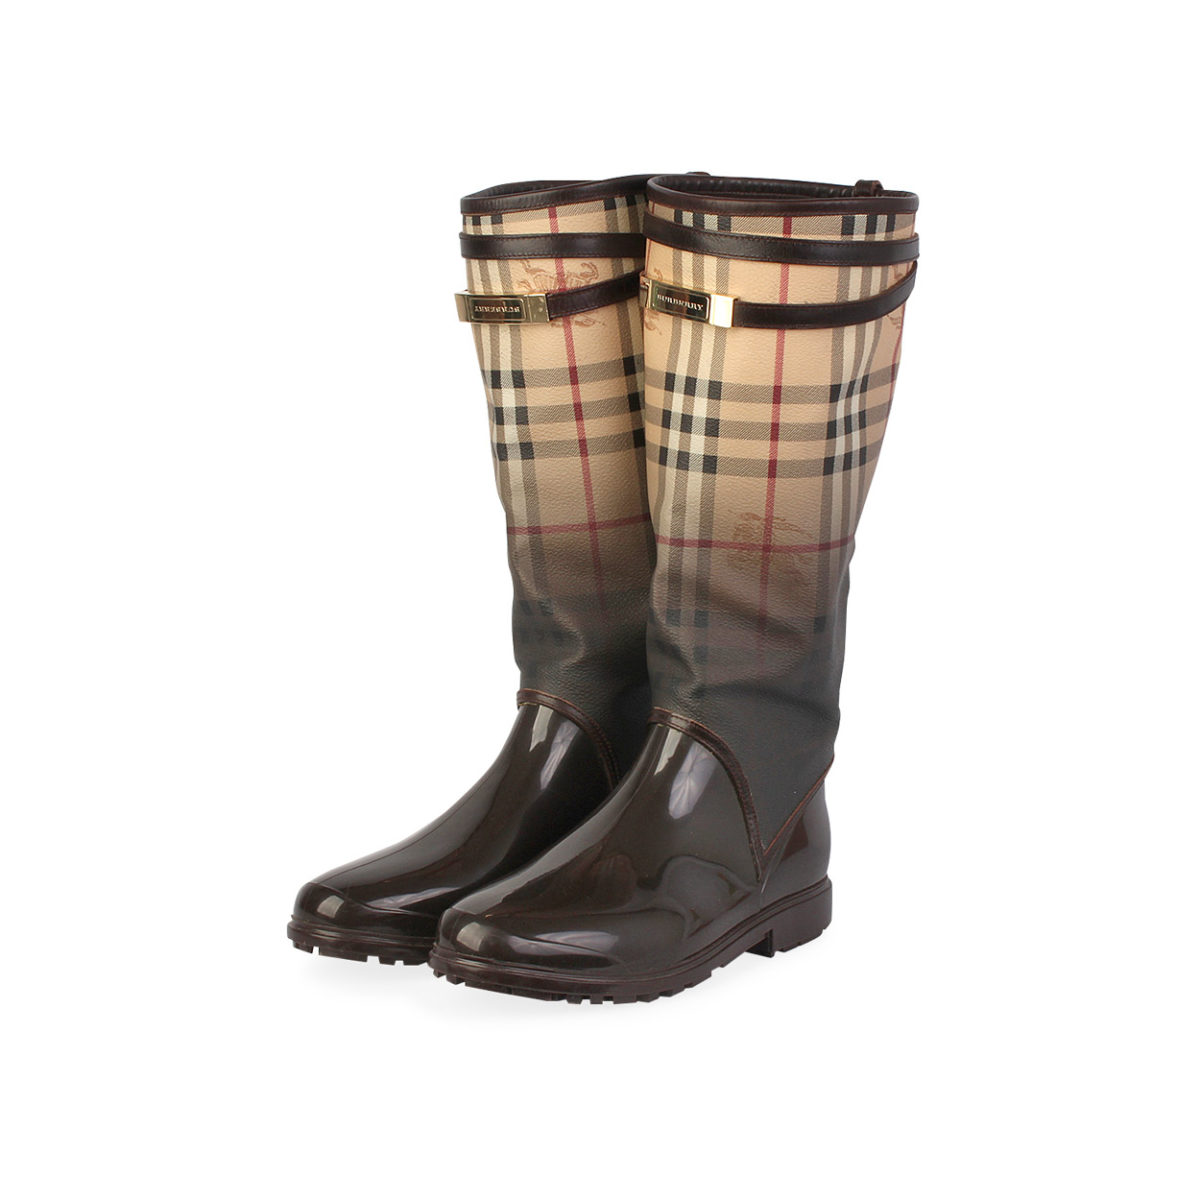 735c369031cea BURBERRY Rubber Check Rain Boots Brown Ombre - S: 38 (5) | Luxity